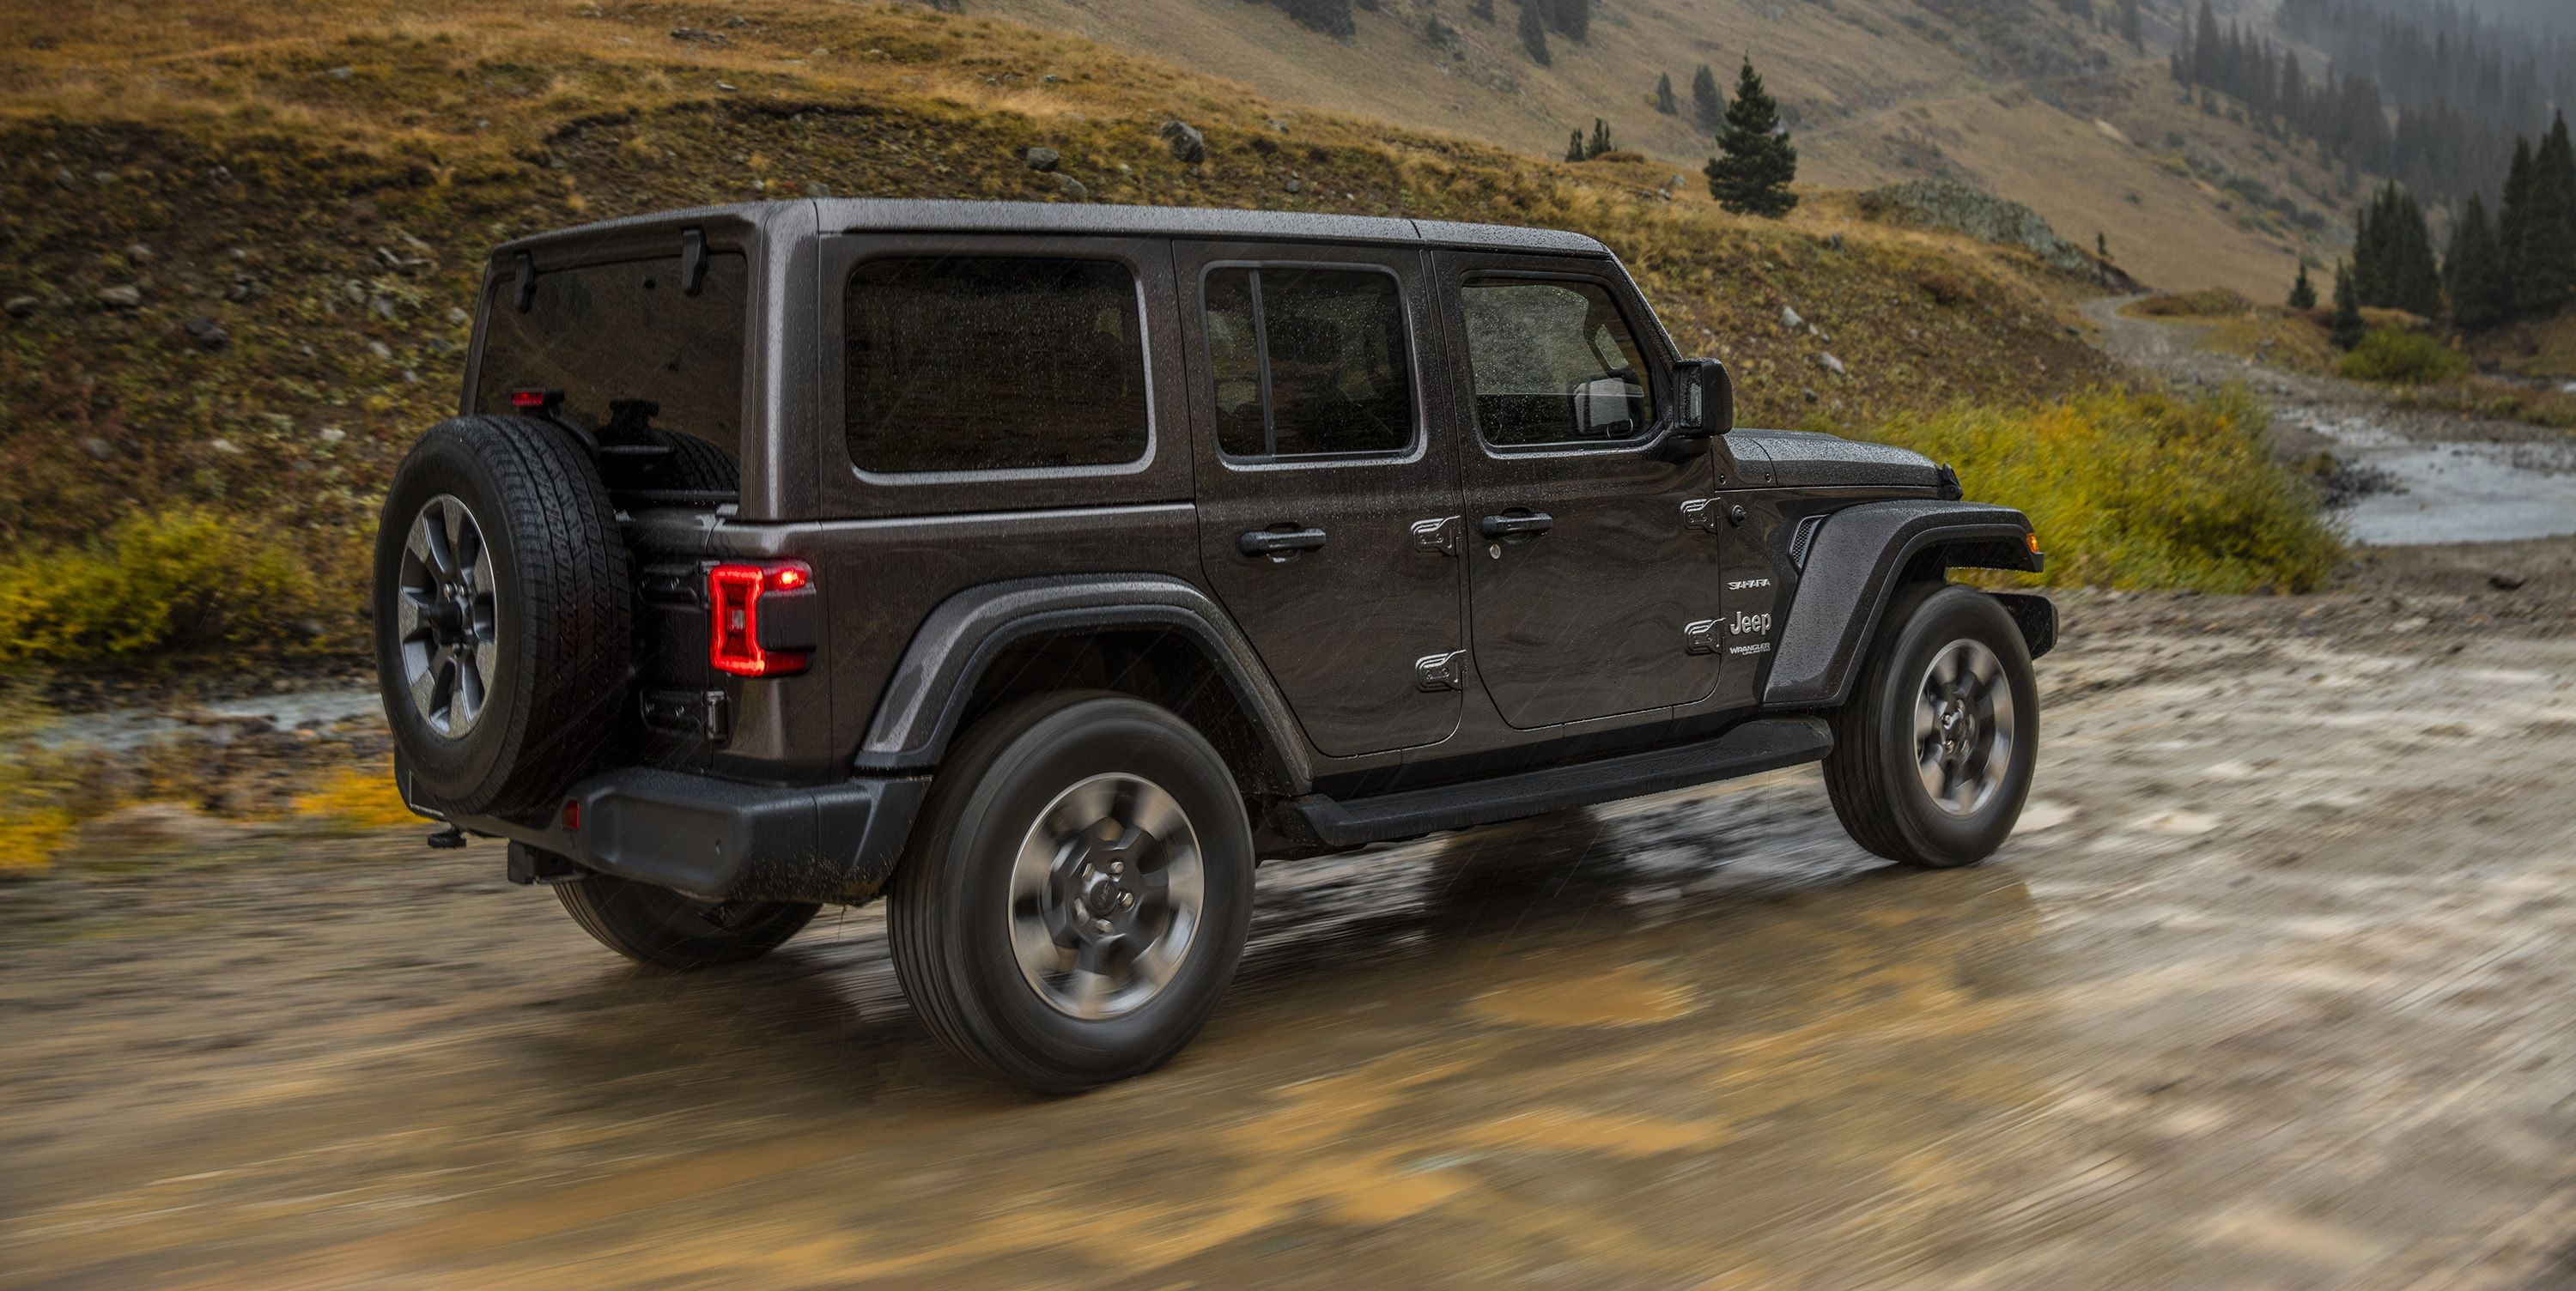 The 2020 Jeep Wrangler Is Getting A Torquey Diesel V 6 Jeep Wrangler Diesel Fuel Economy Jeep Wrangler